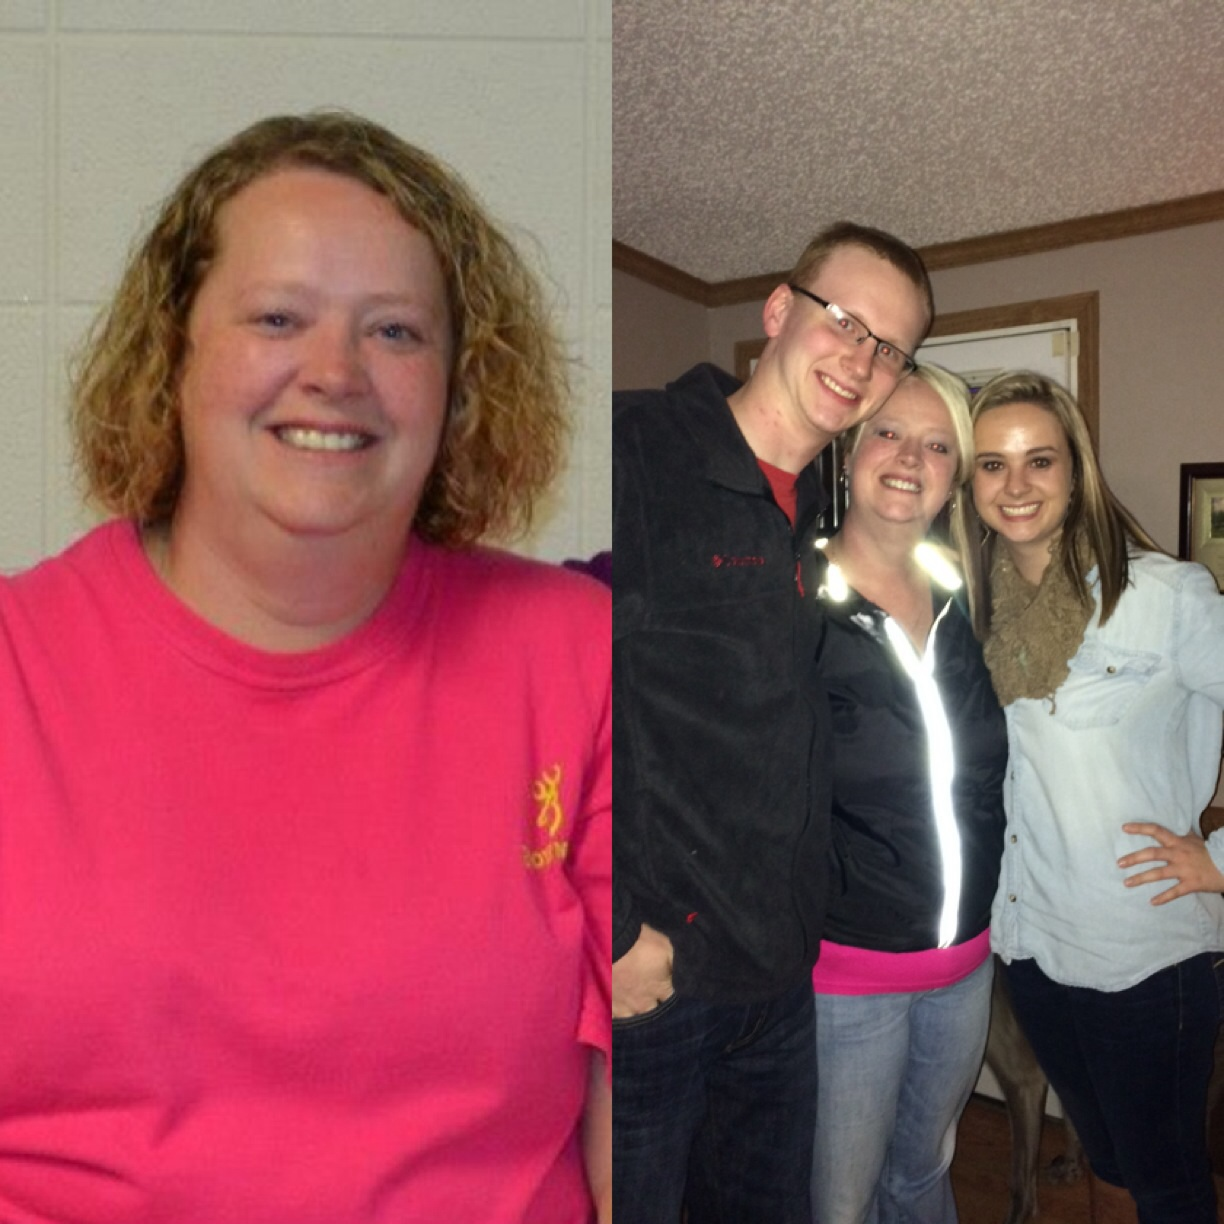 Michelle lost 80 pounds! See my before and after weight loss pictures, and read amazing weight loss success stories from real women and their best weight loss diet plans and programs. Motivation to lose weight with walking and inspiration from before and after weightloss pics and photos.